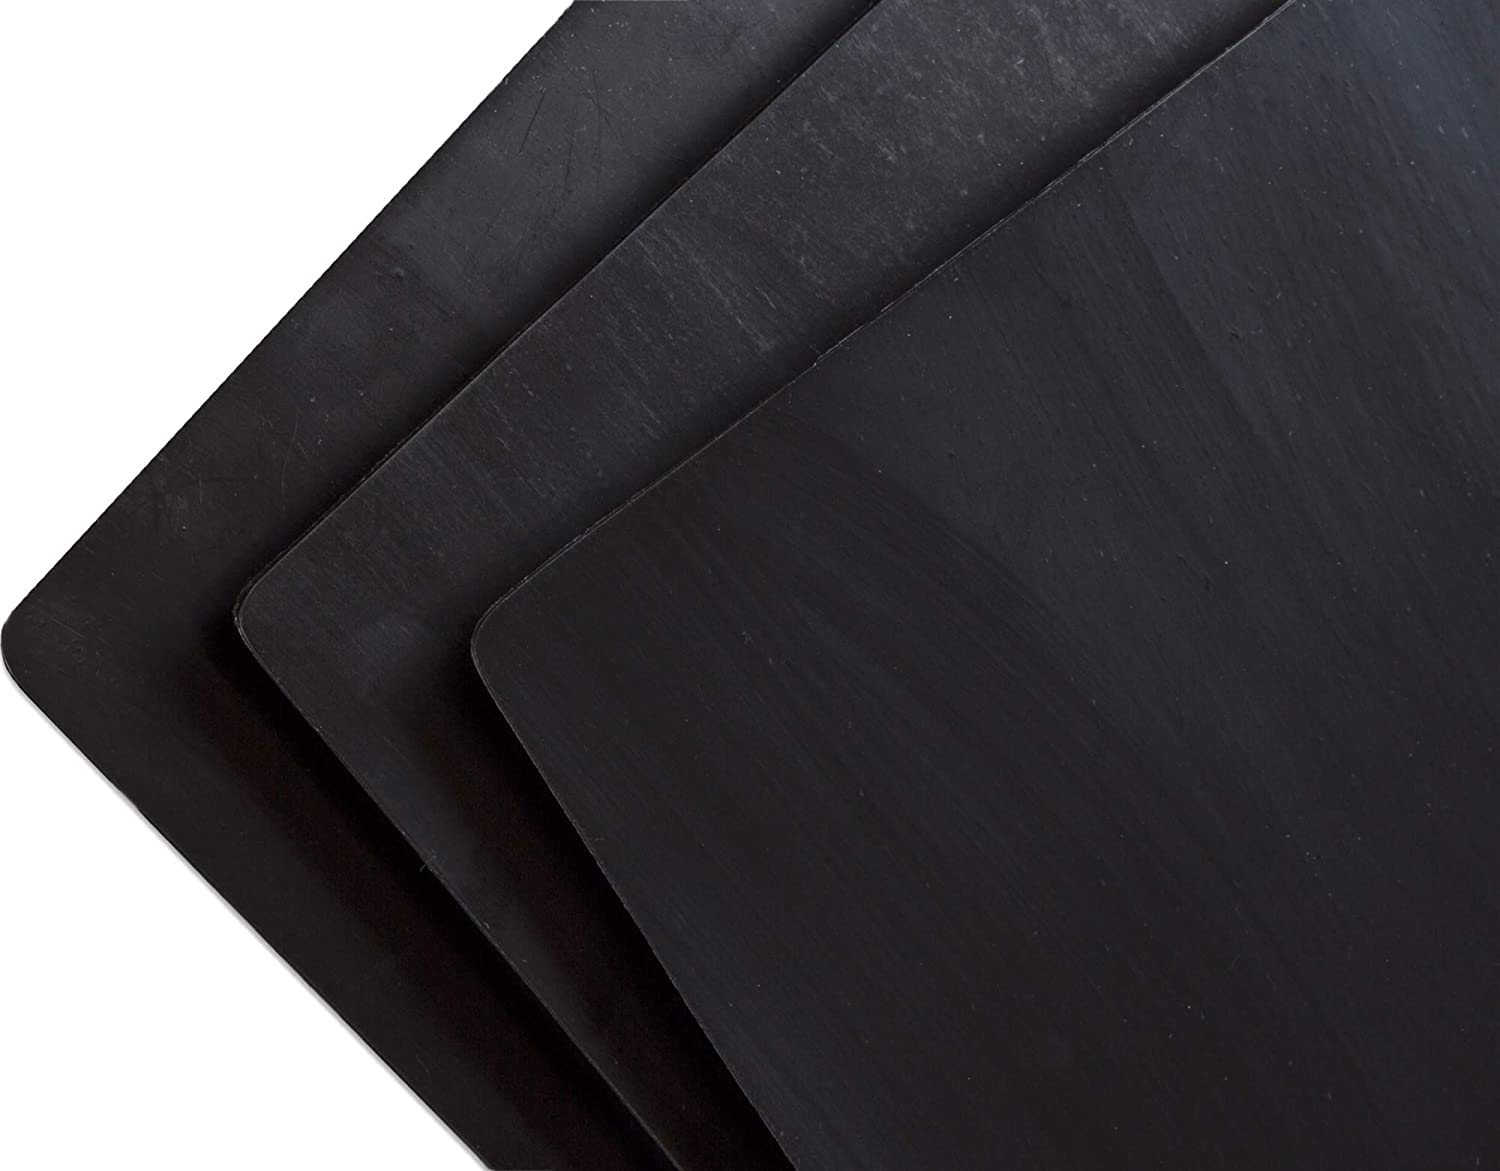 HALF OFF PONDS - 12 ft. x 30 ft. 20-Mil LLDPE Pond Liner for Ponds, Lakes and Retention Basins